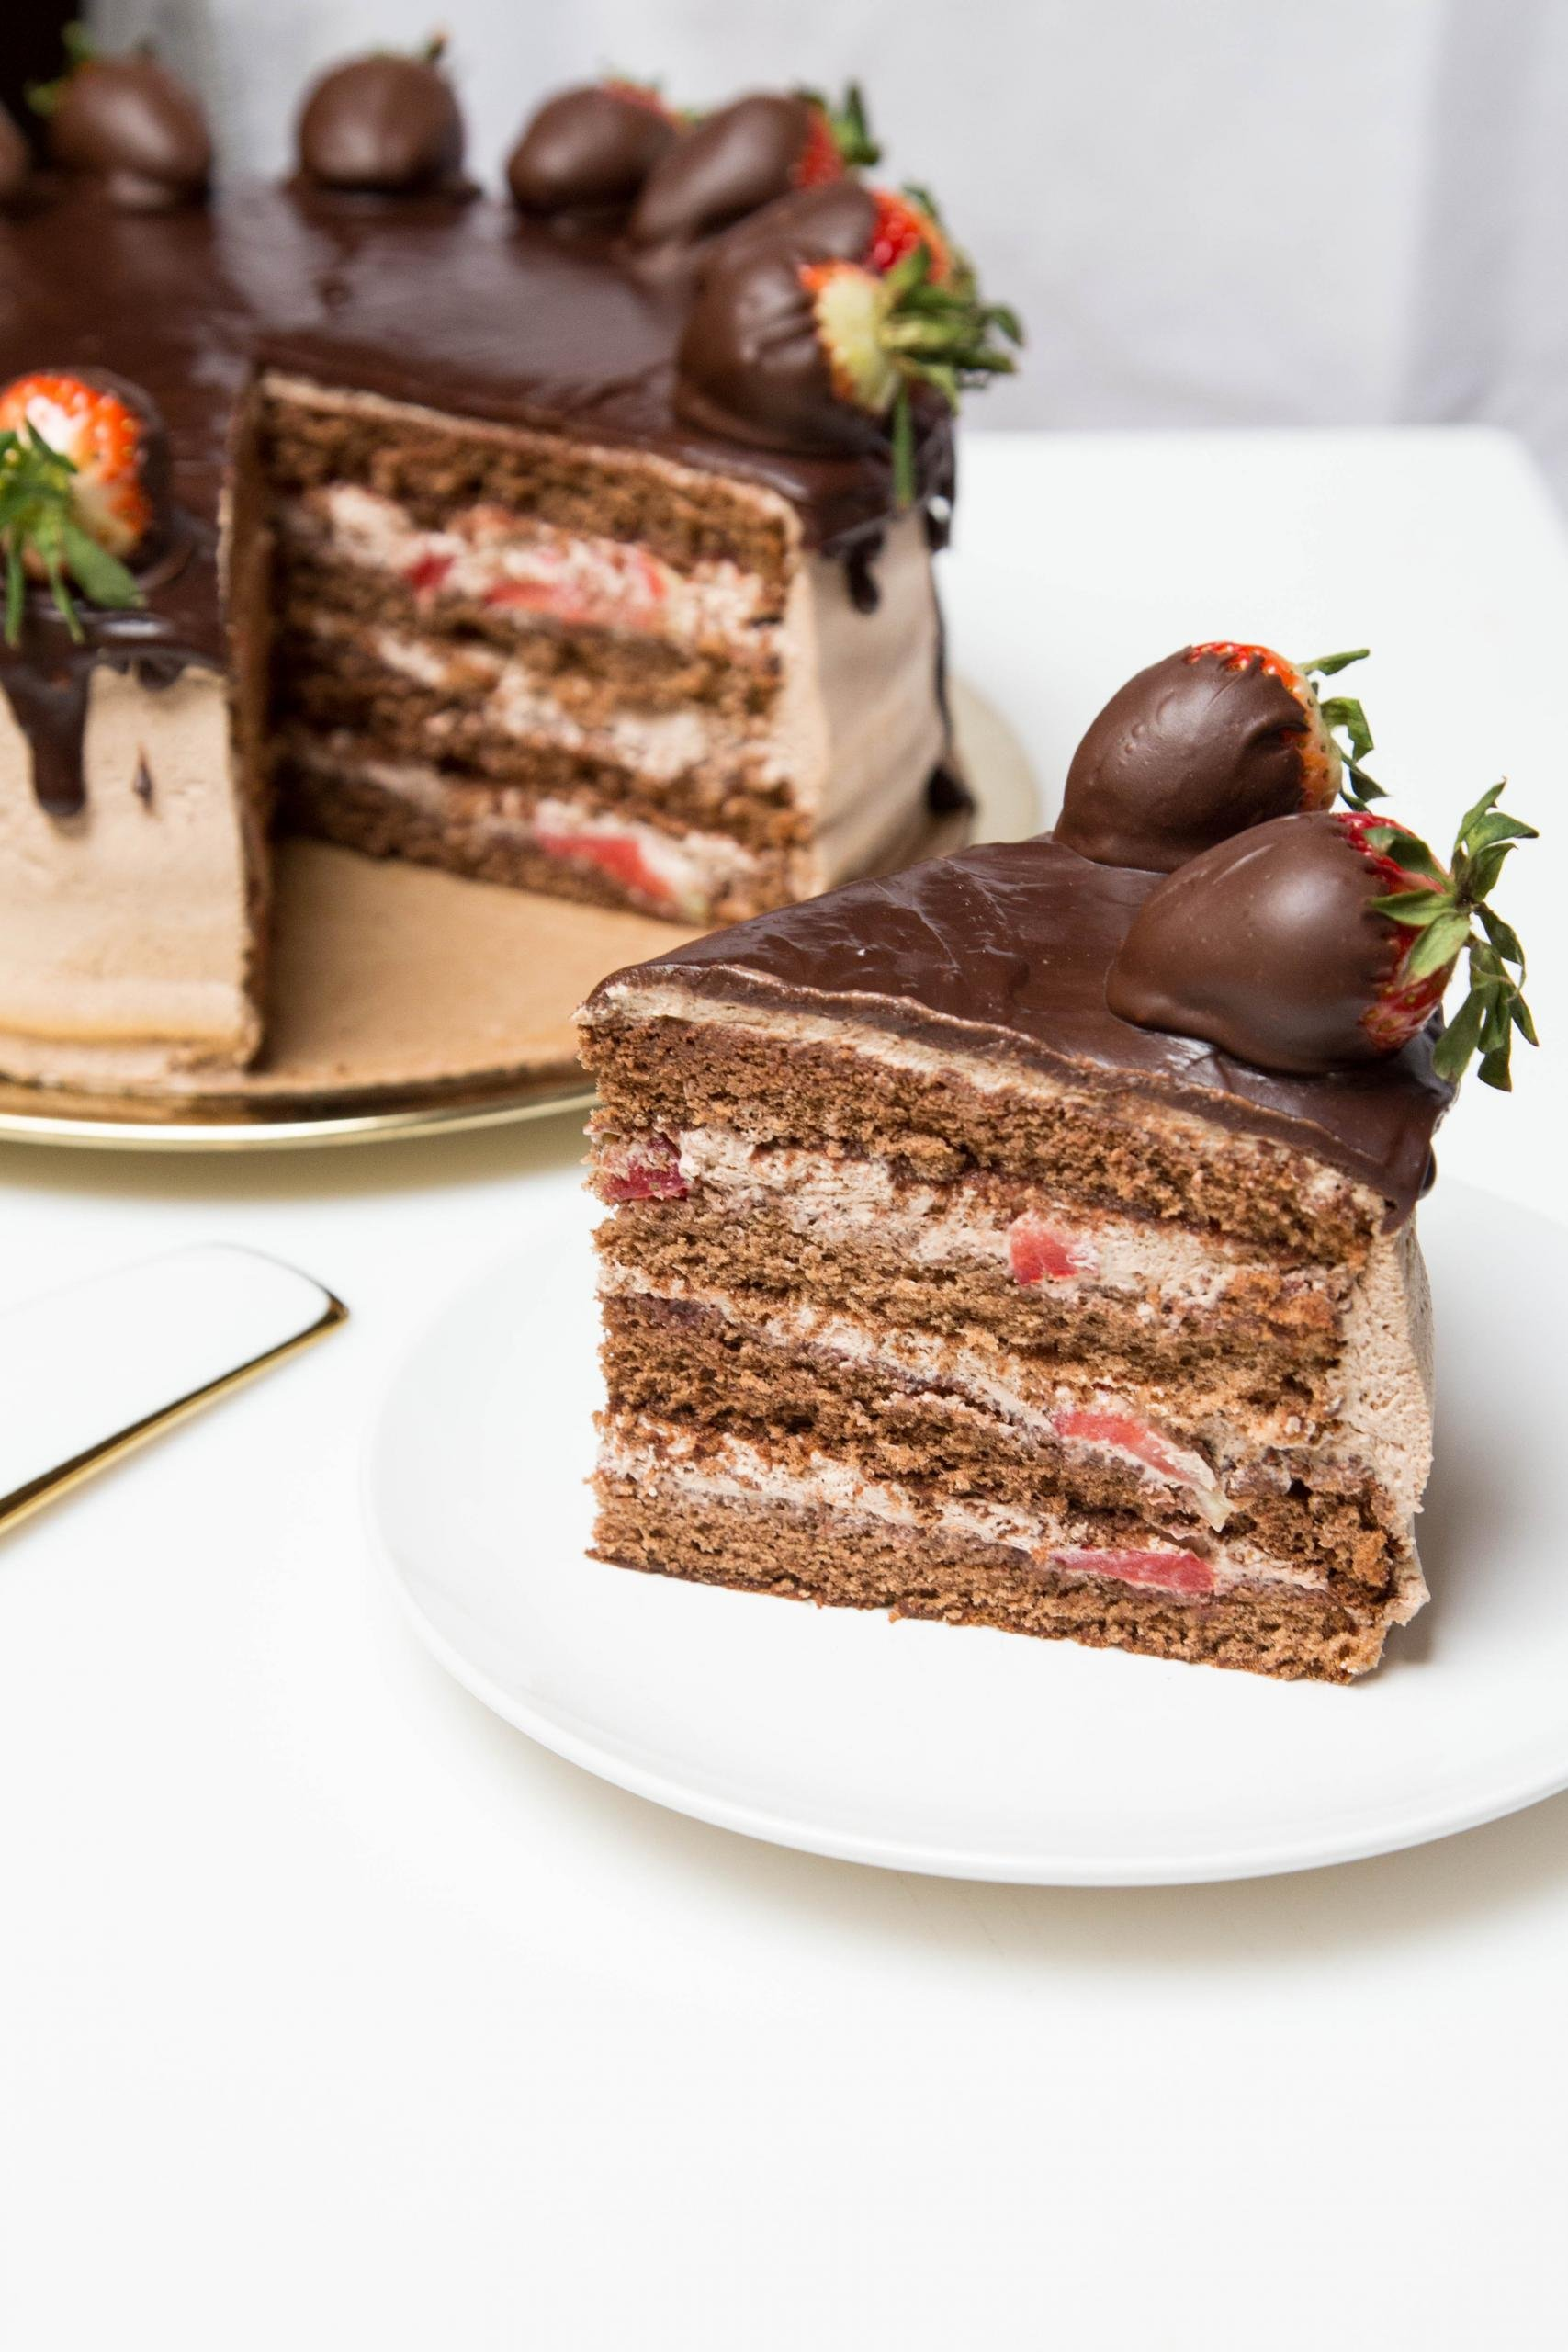 Strawberry Chocolate Cake slice on a plate